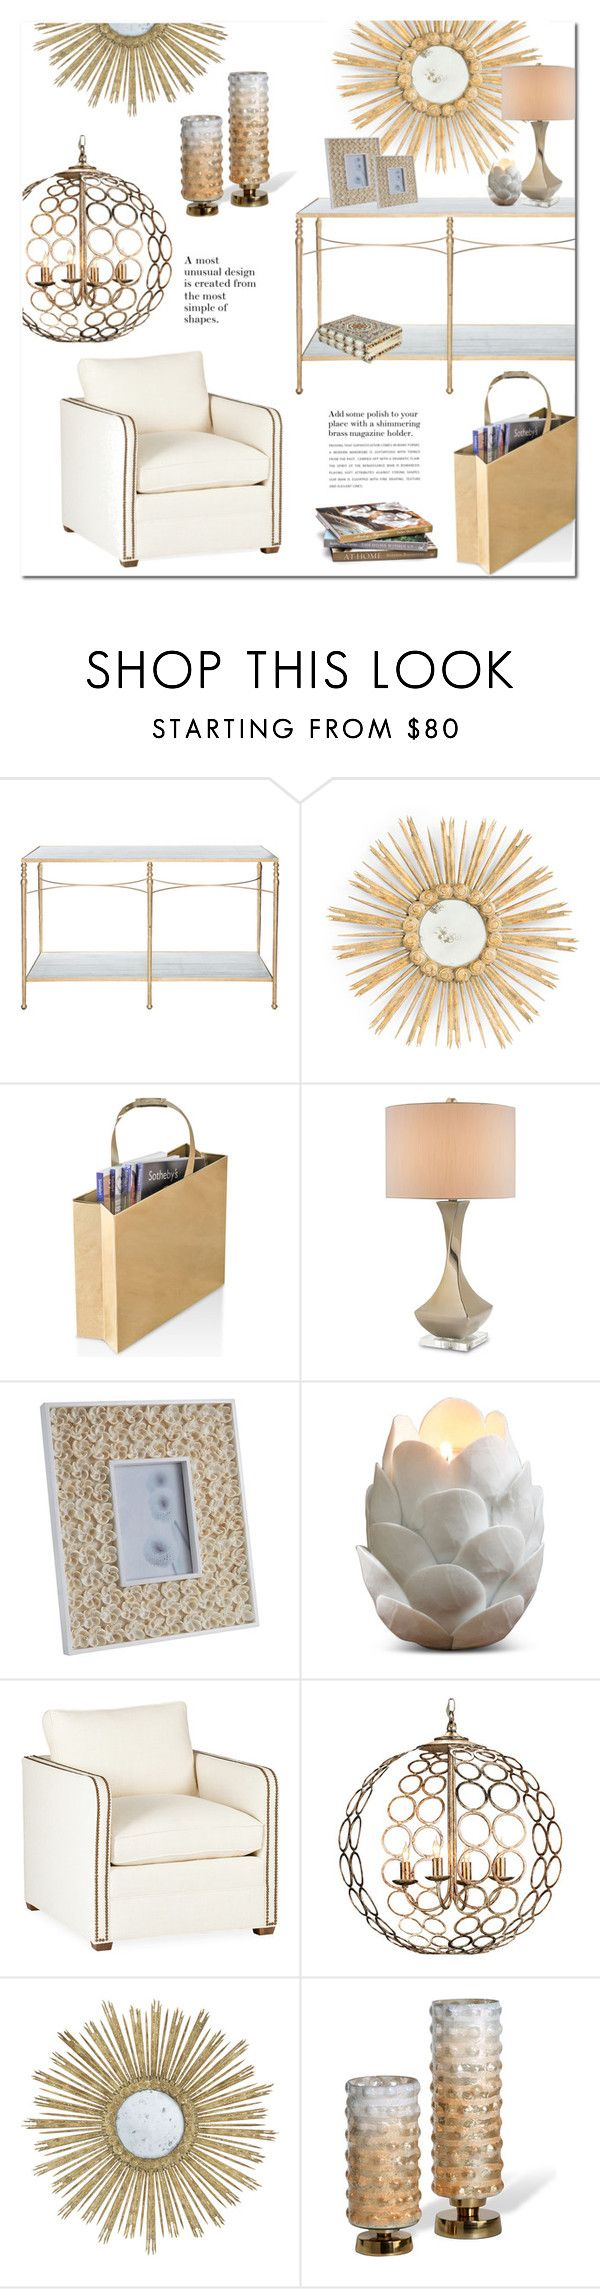 """""""Hollywood Regency"""" by kathykuohome ❤ liked on Polyvore featuring interior, interiors, interior design, home, home decor, interior decorating, Home, homedecor, homedesign and homeset"""